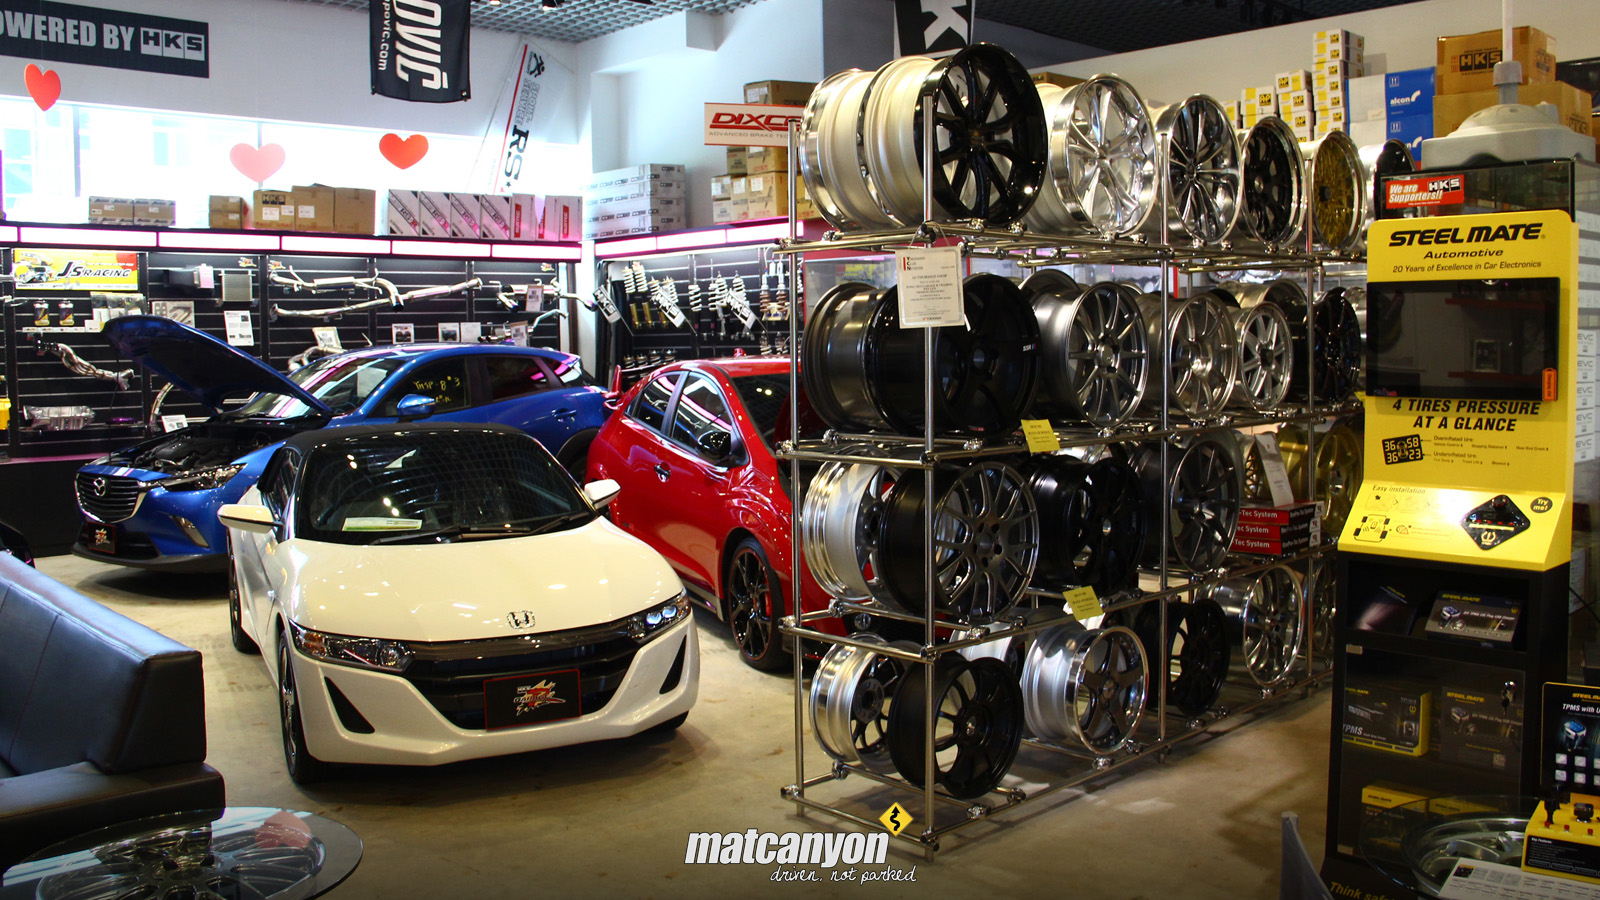 Mat Canyon: Made For The Streets | Garage R on